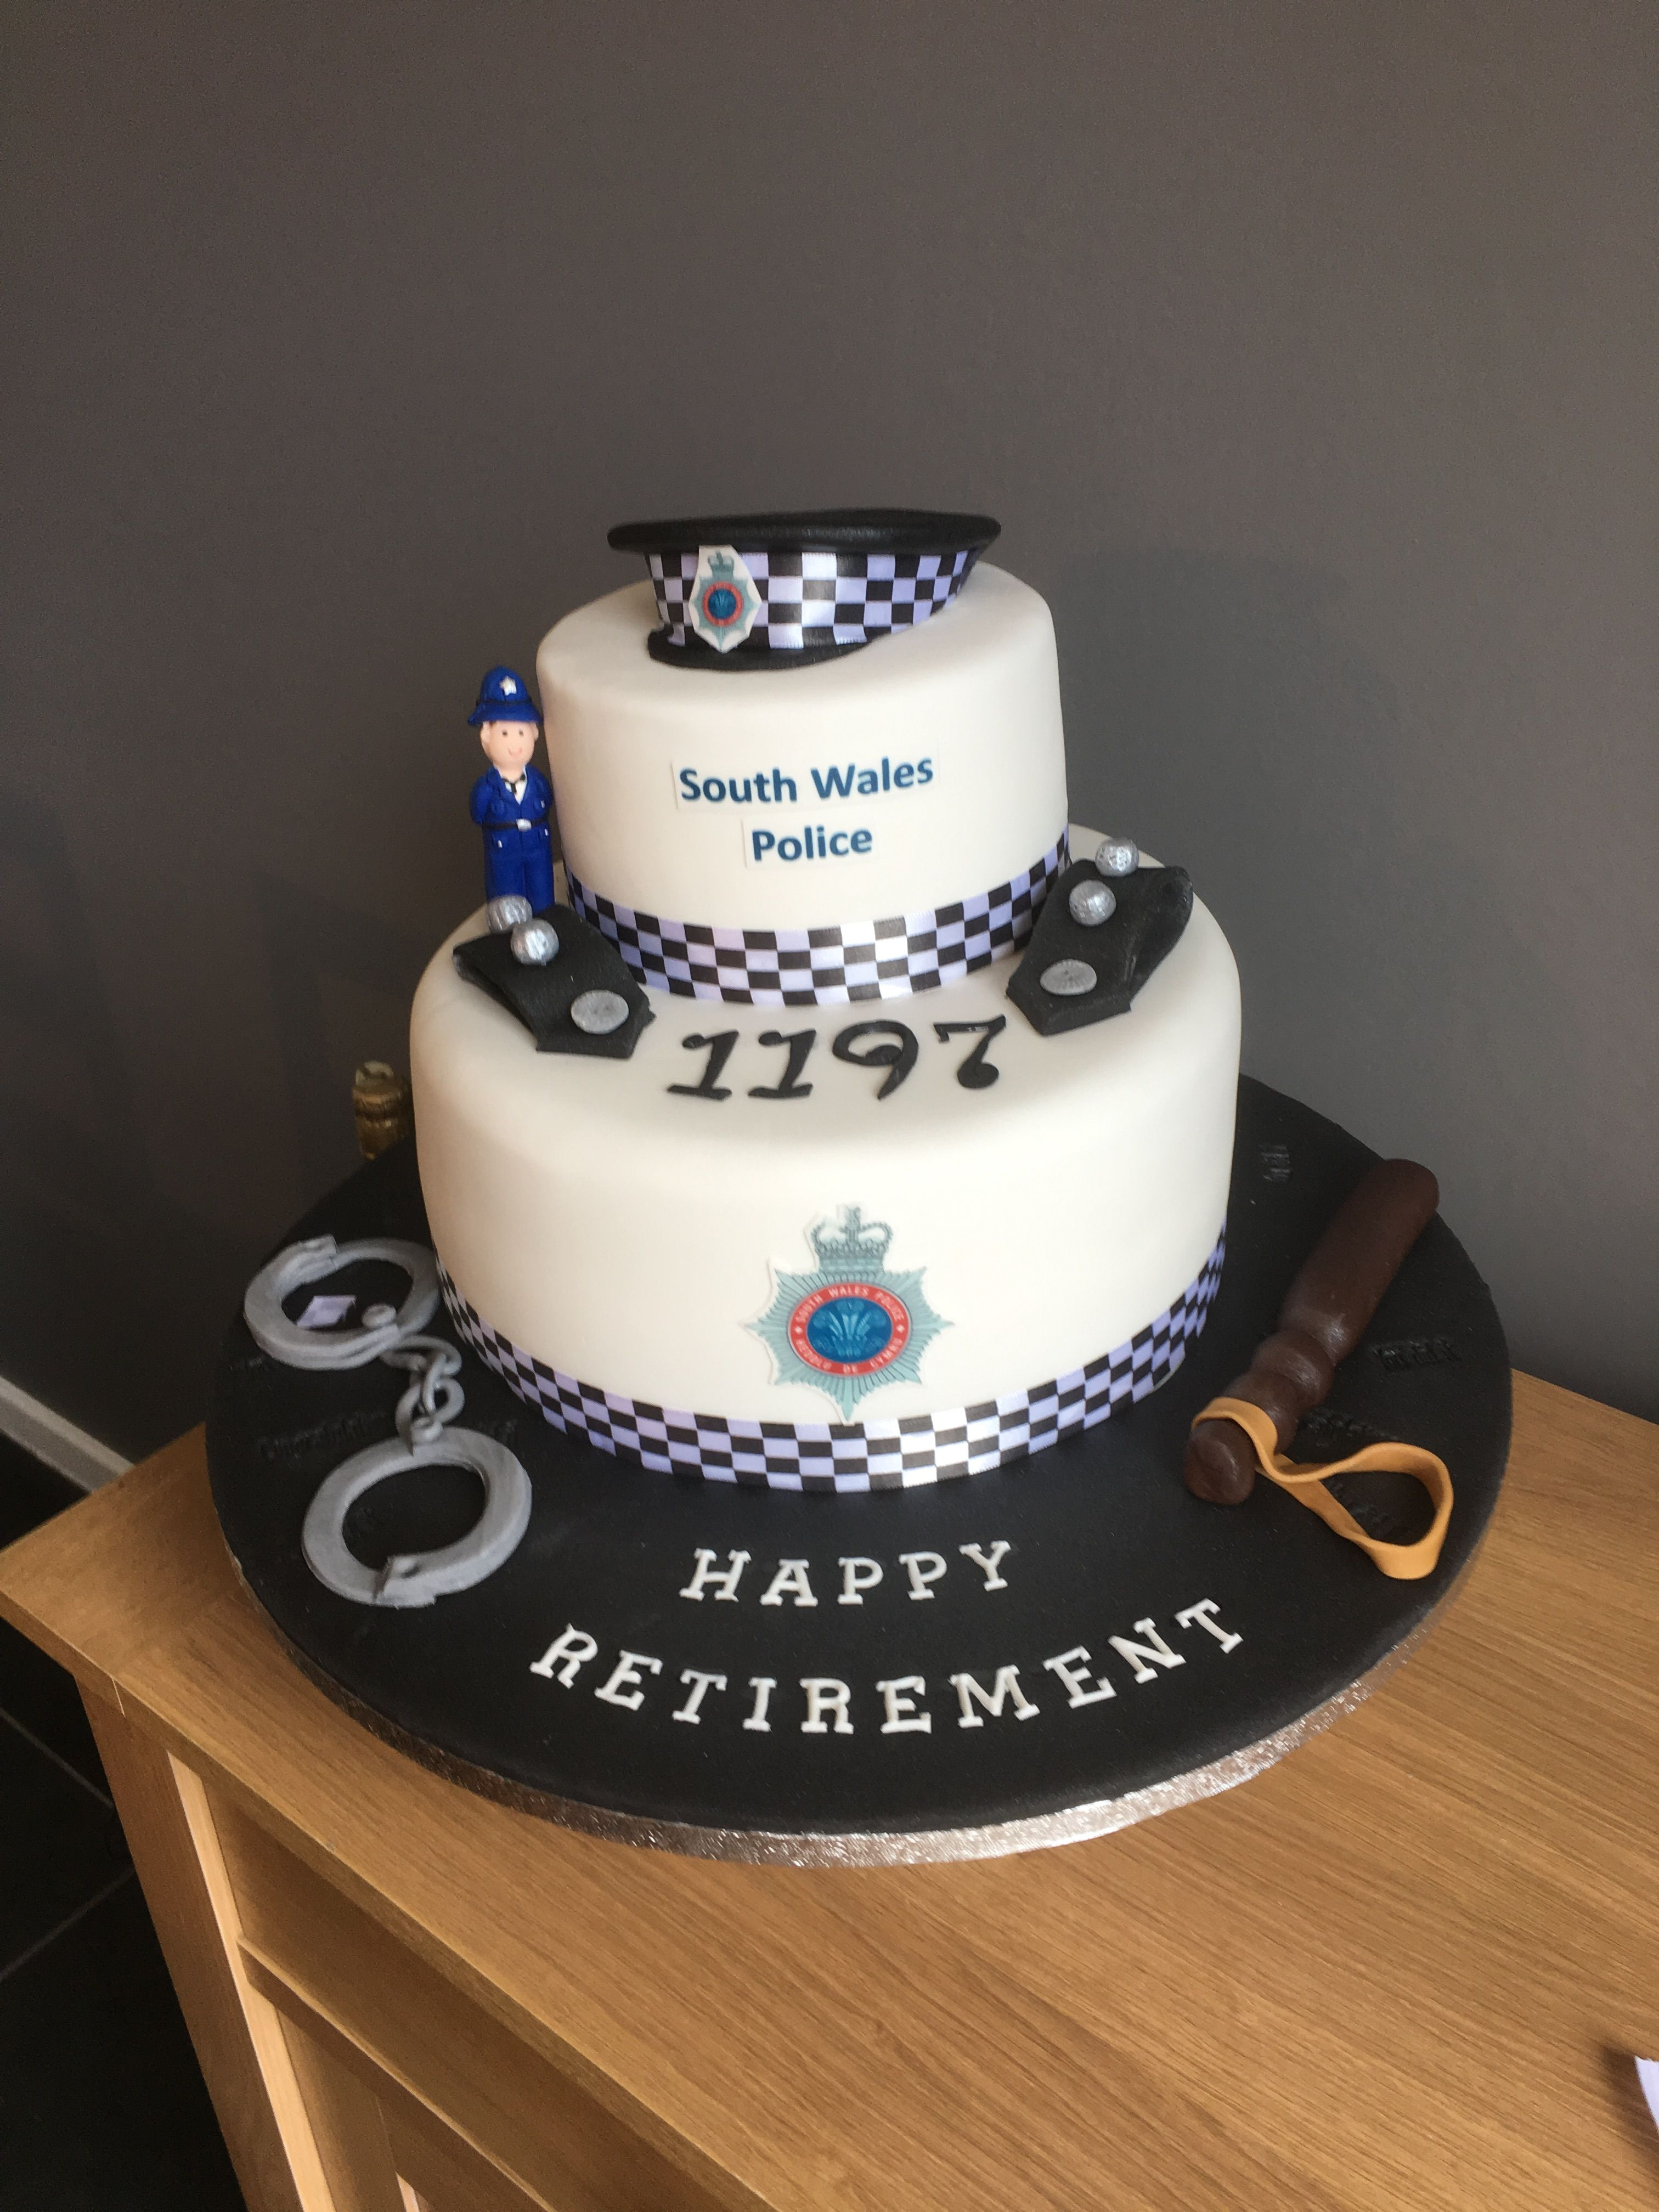 Police Retirement Cake Retirement Party Cakes Retirement Cakes